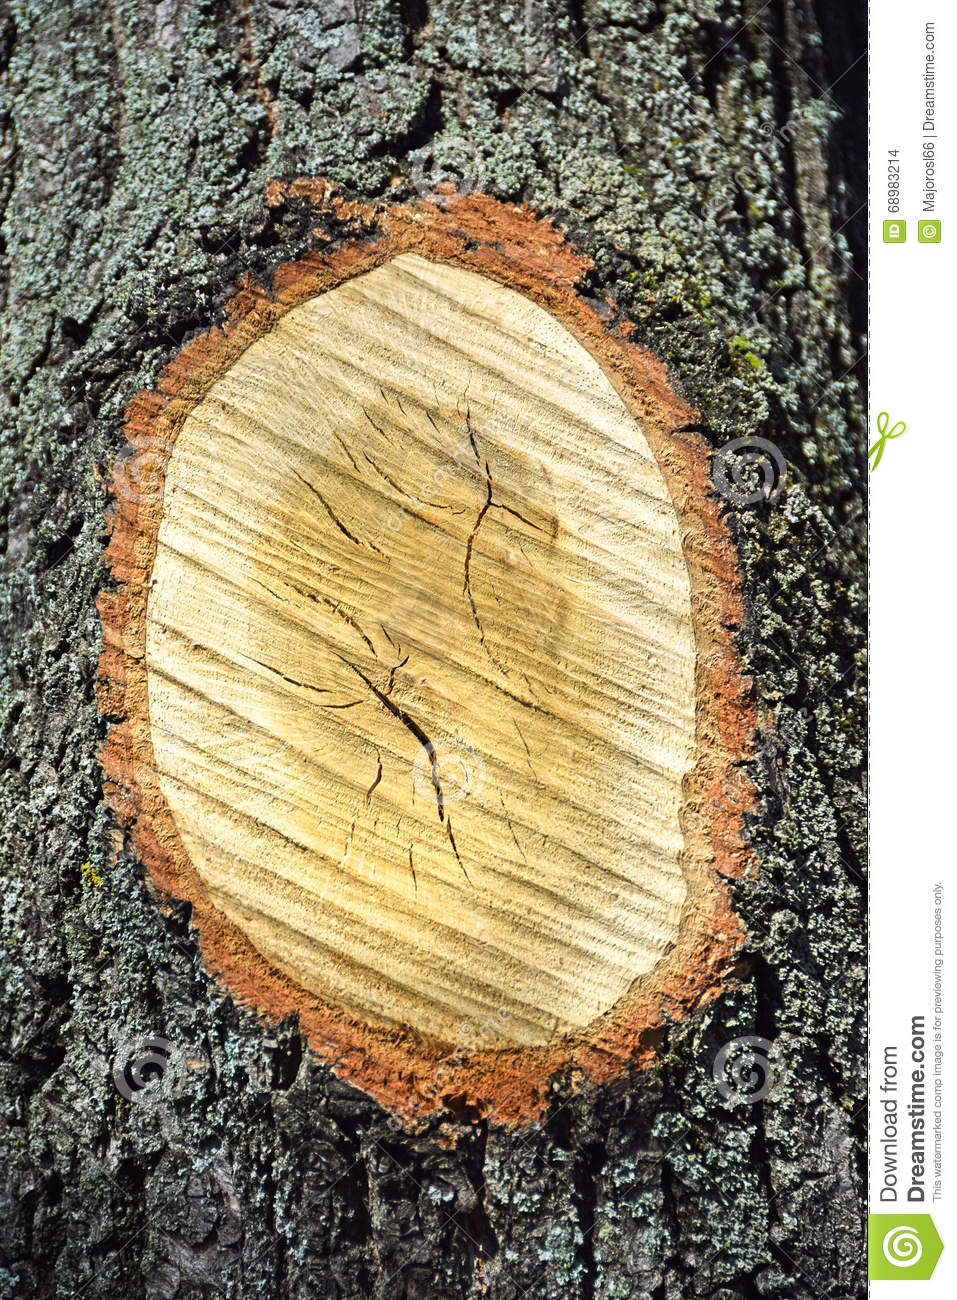 Tree trunk with truncated branch